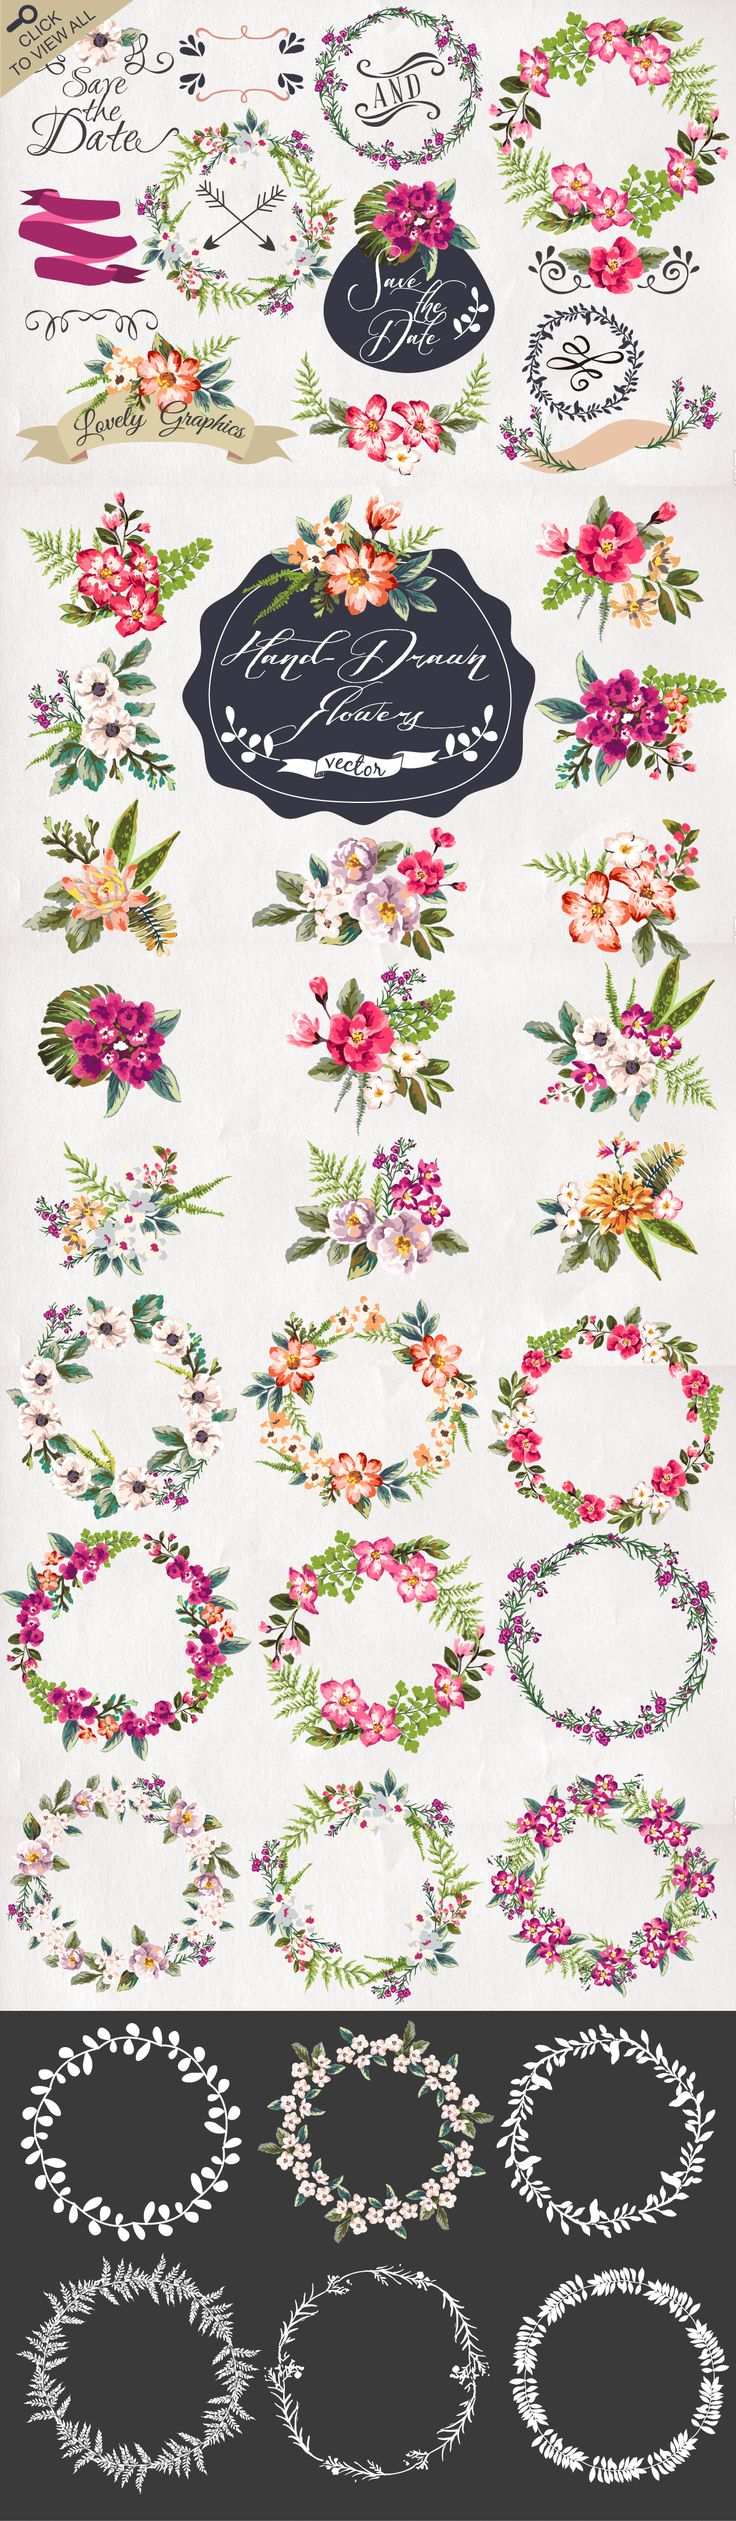 30%Off • Hand-drawn flower MEGAPACK by Graphic Box on Creative Market